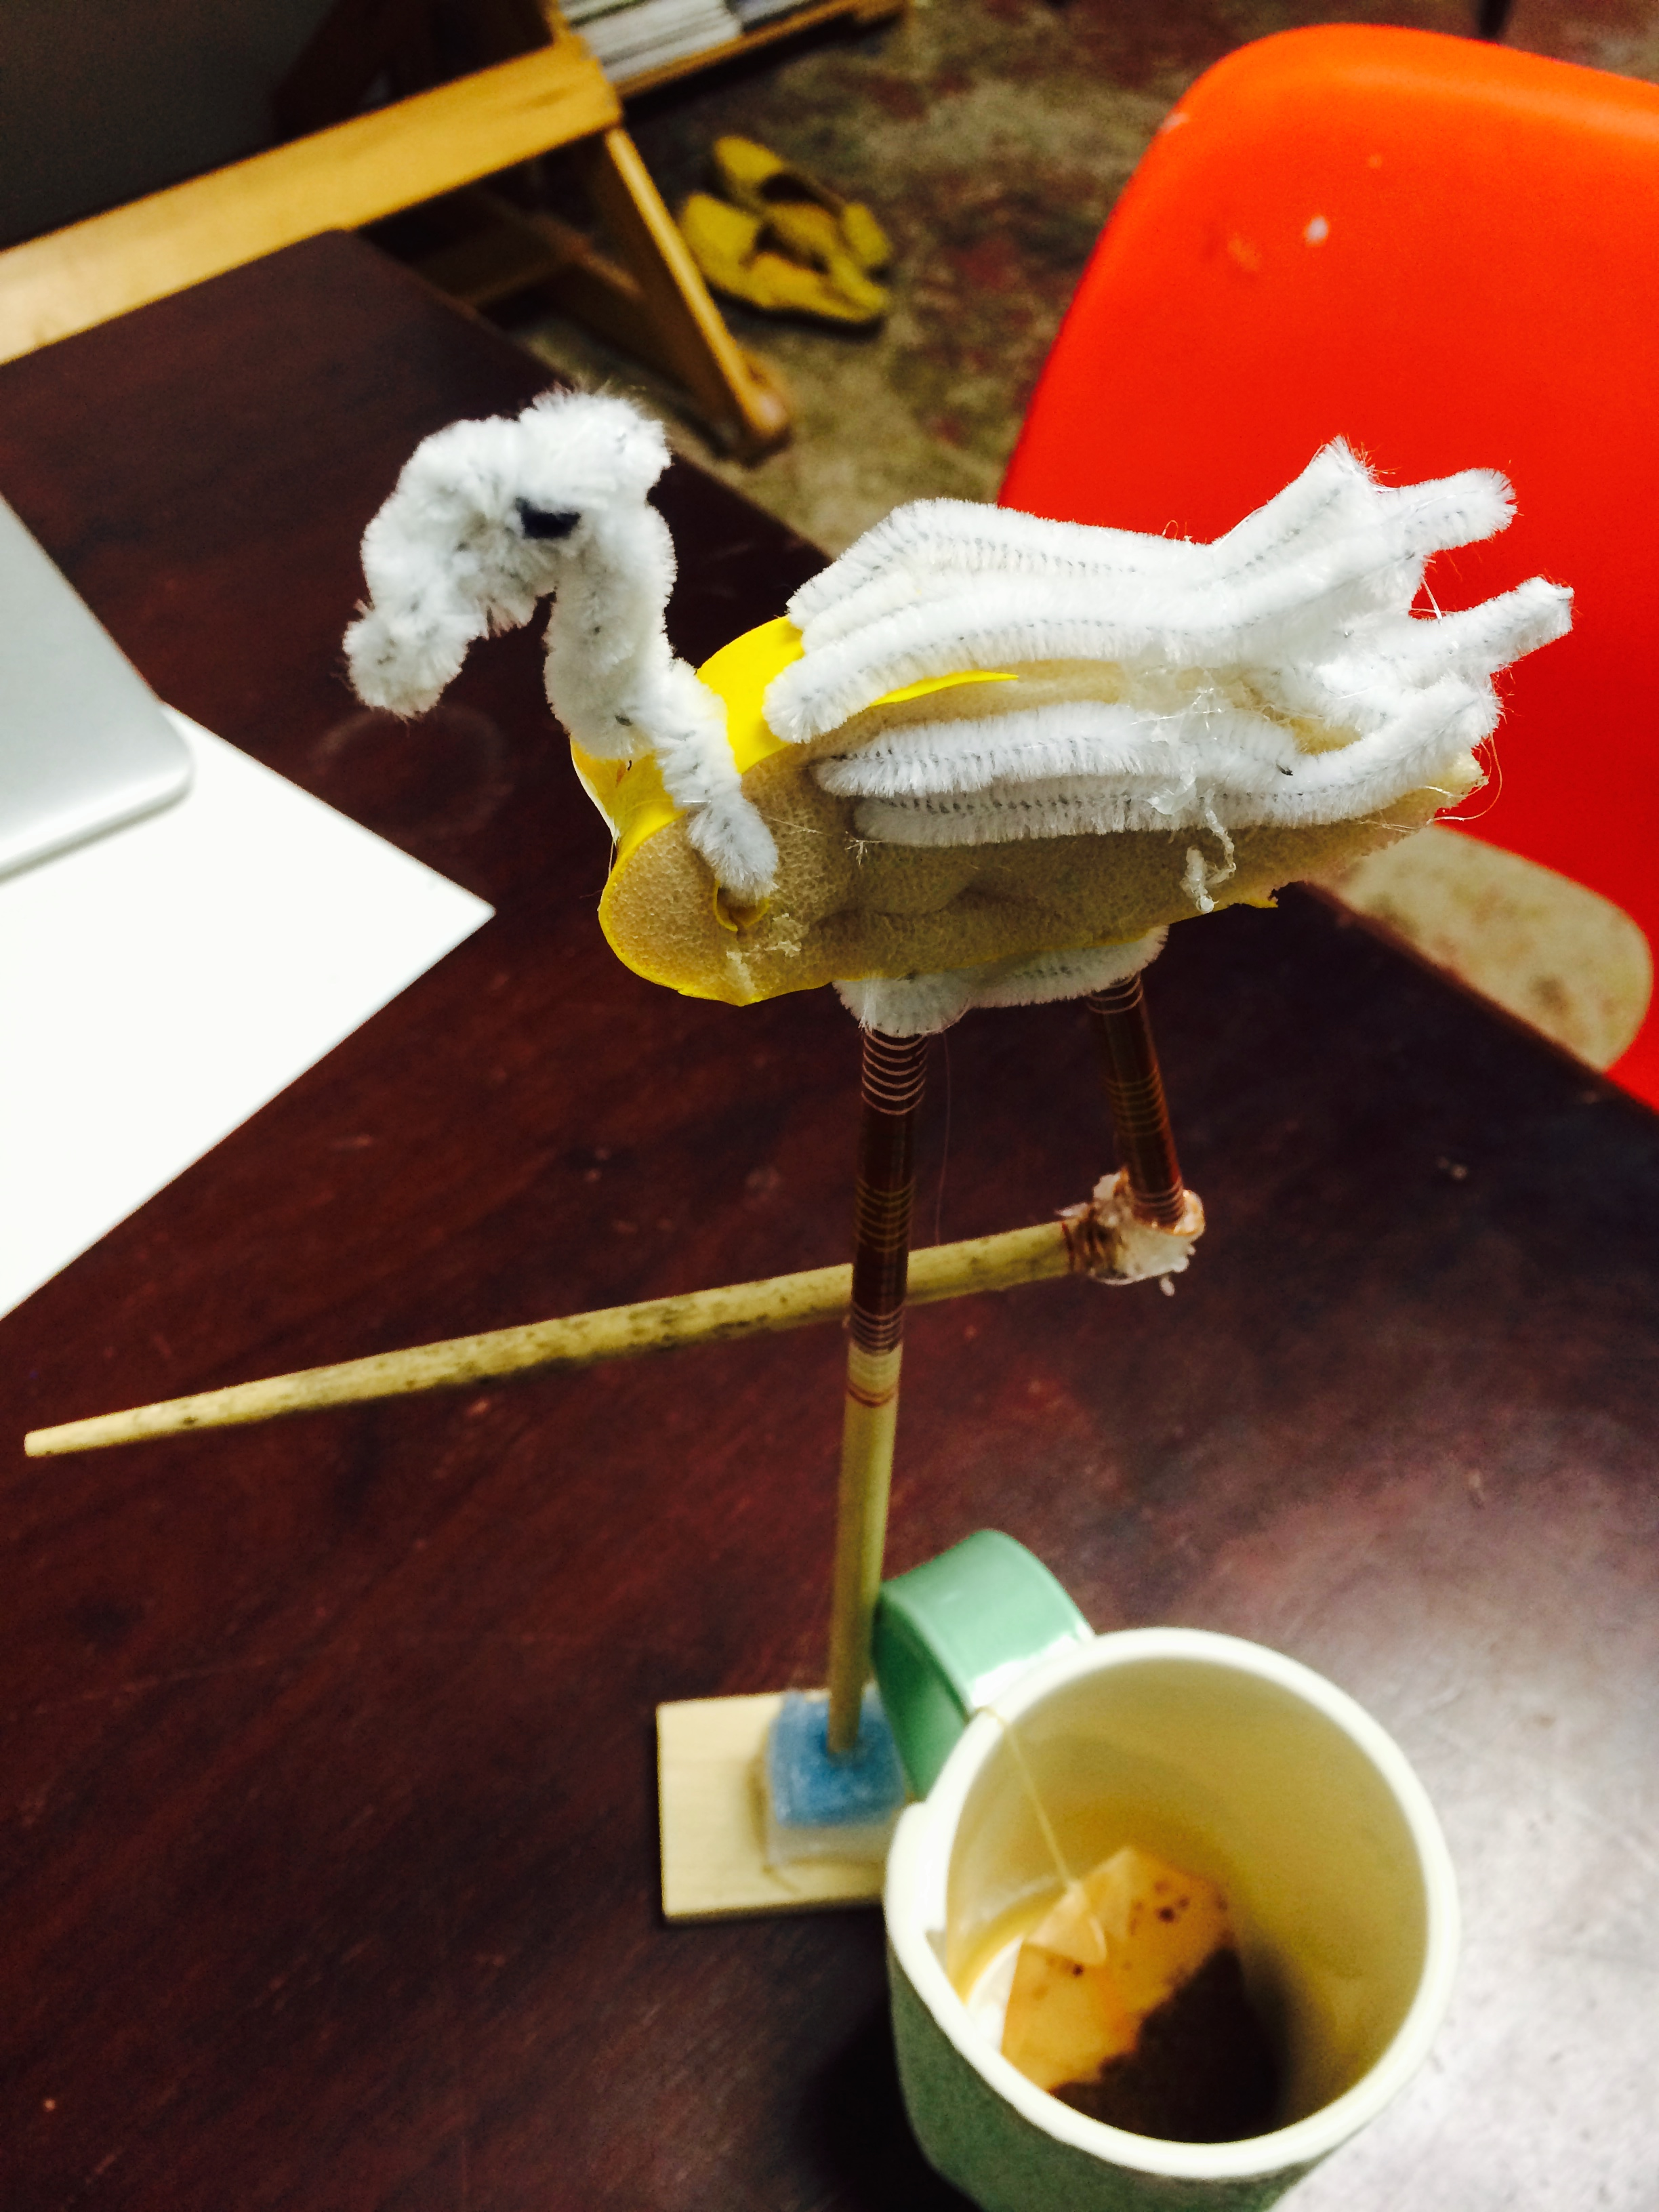 Incredible little found object sculpture: foam, pipe cleaners, chop sticks...